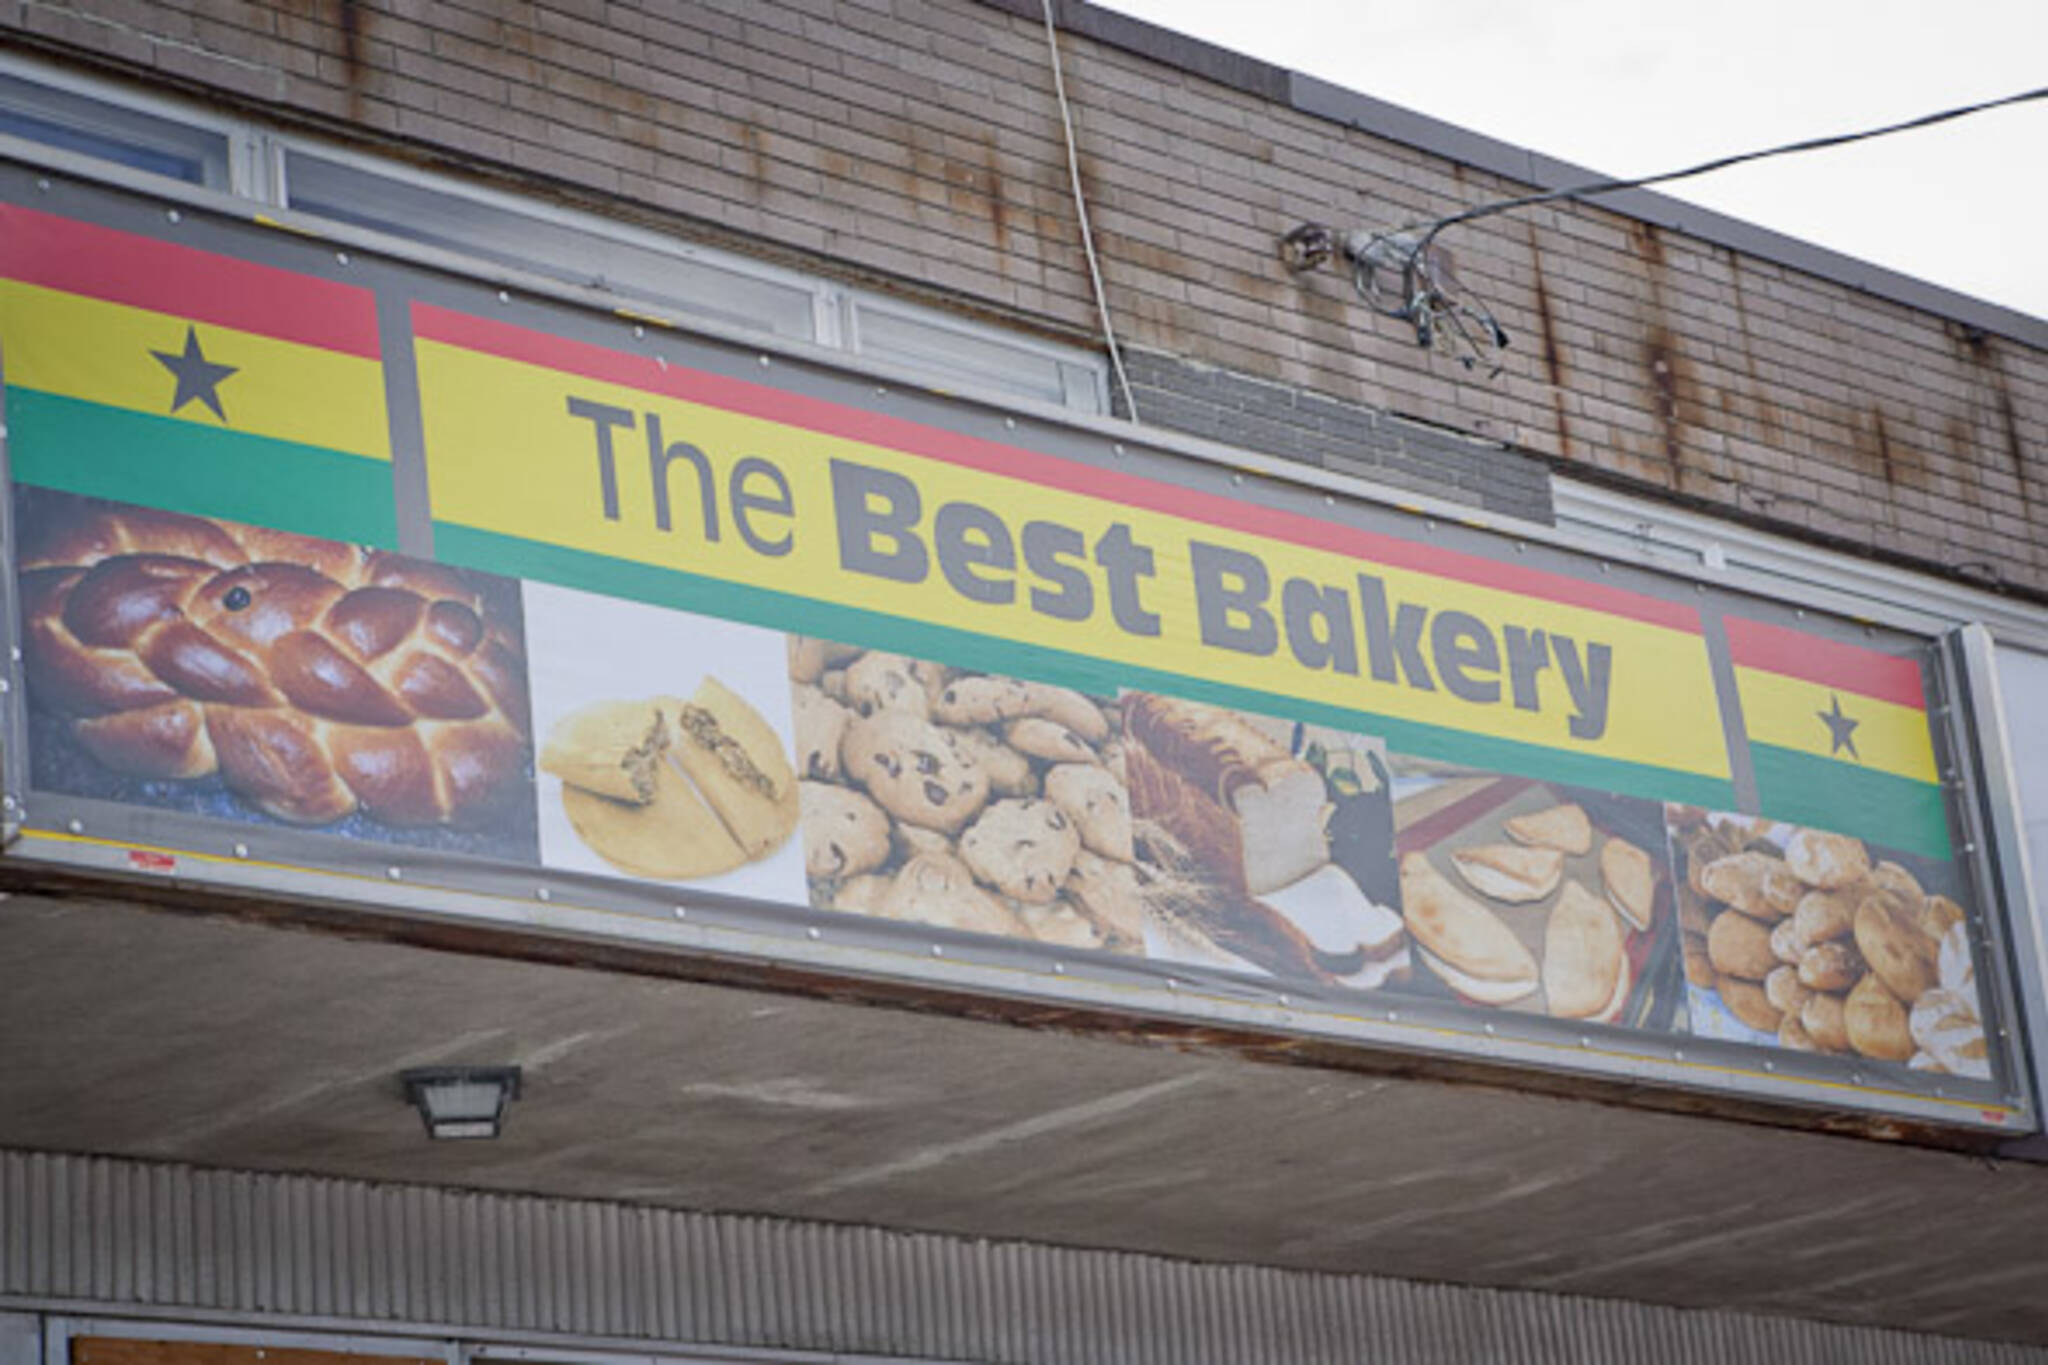 The Best Bakery Toronto